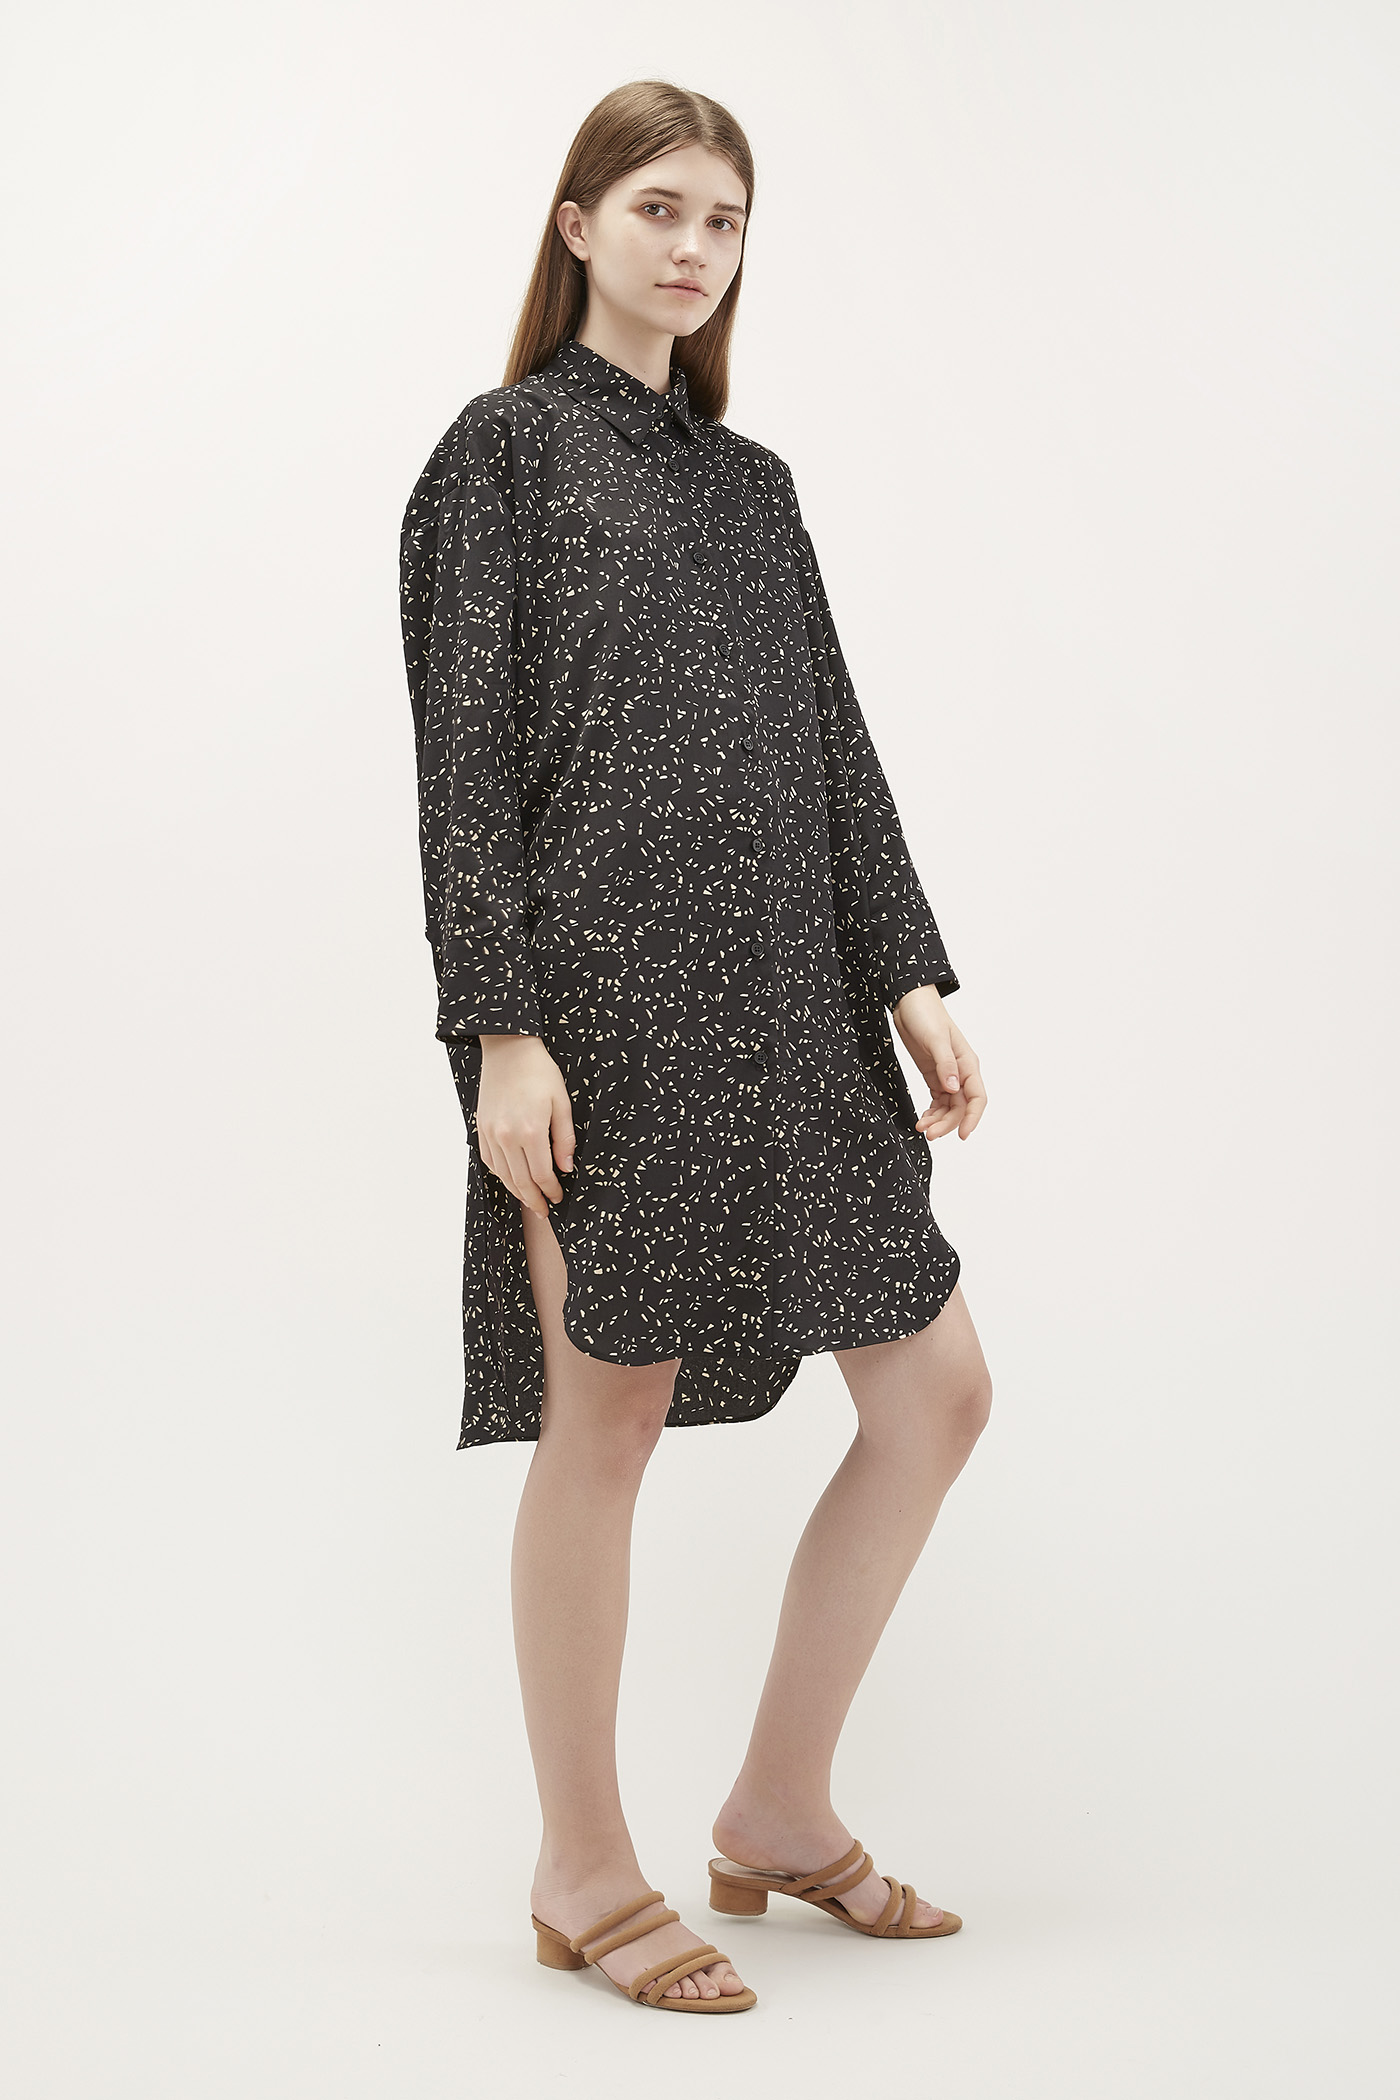 Evey Shirtdress